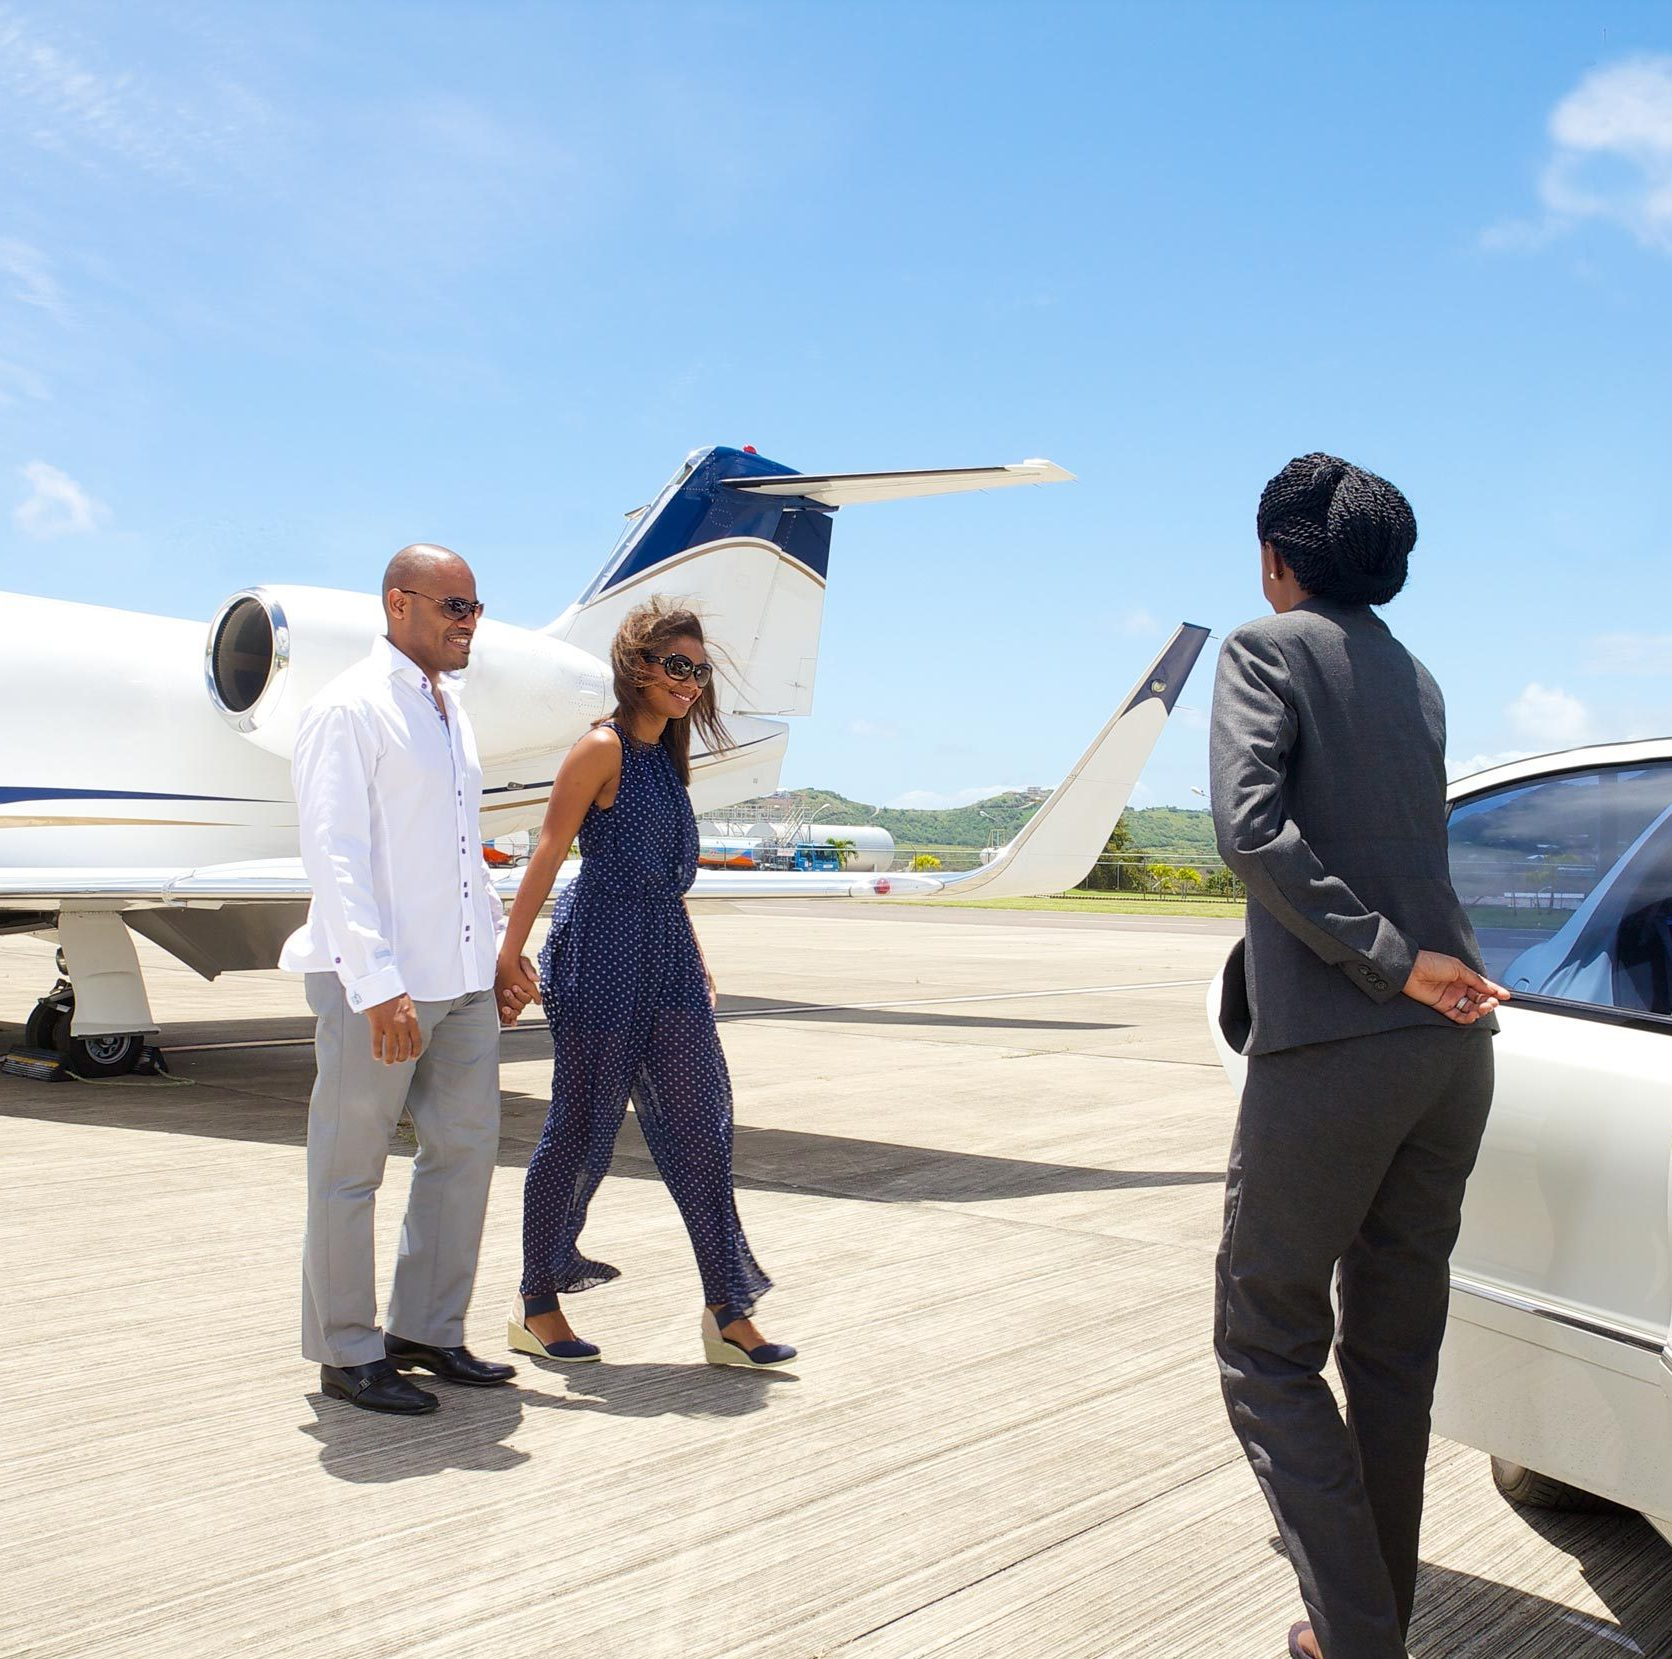 A YU Lounge attendant is picking up guests at luxury destination St. Kitts